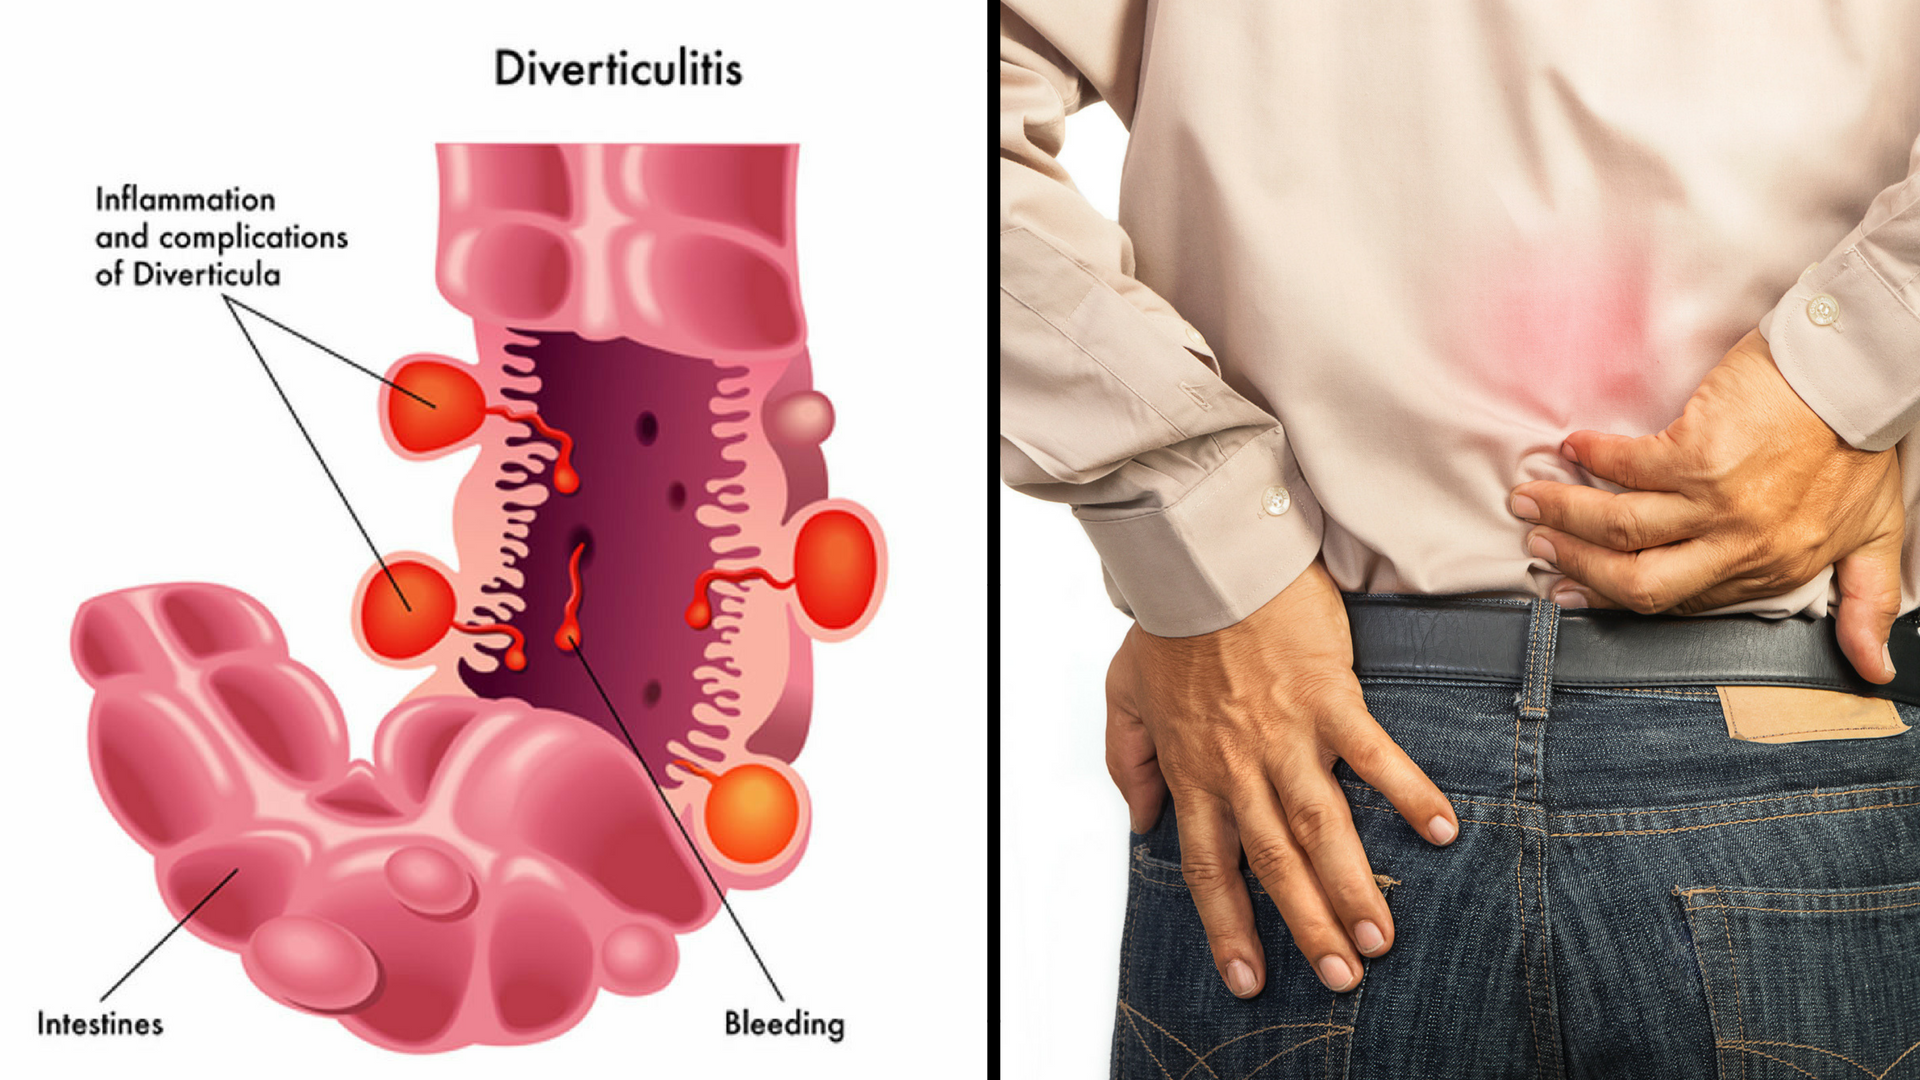 diverticulitis low back pain